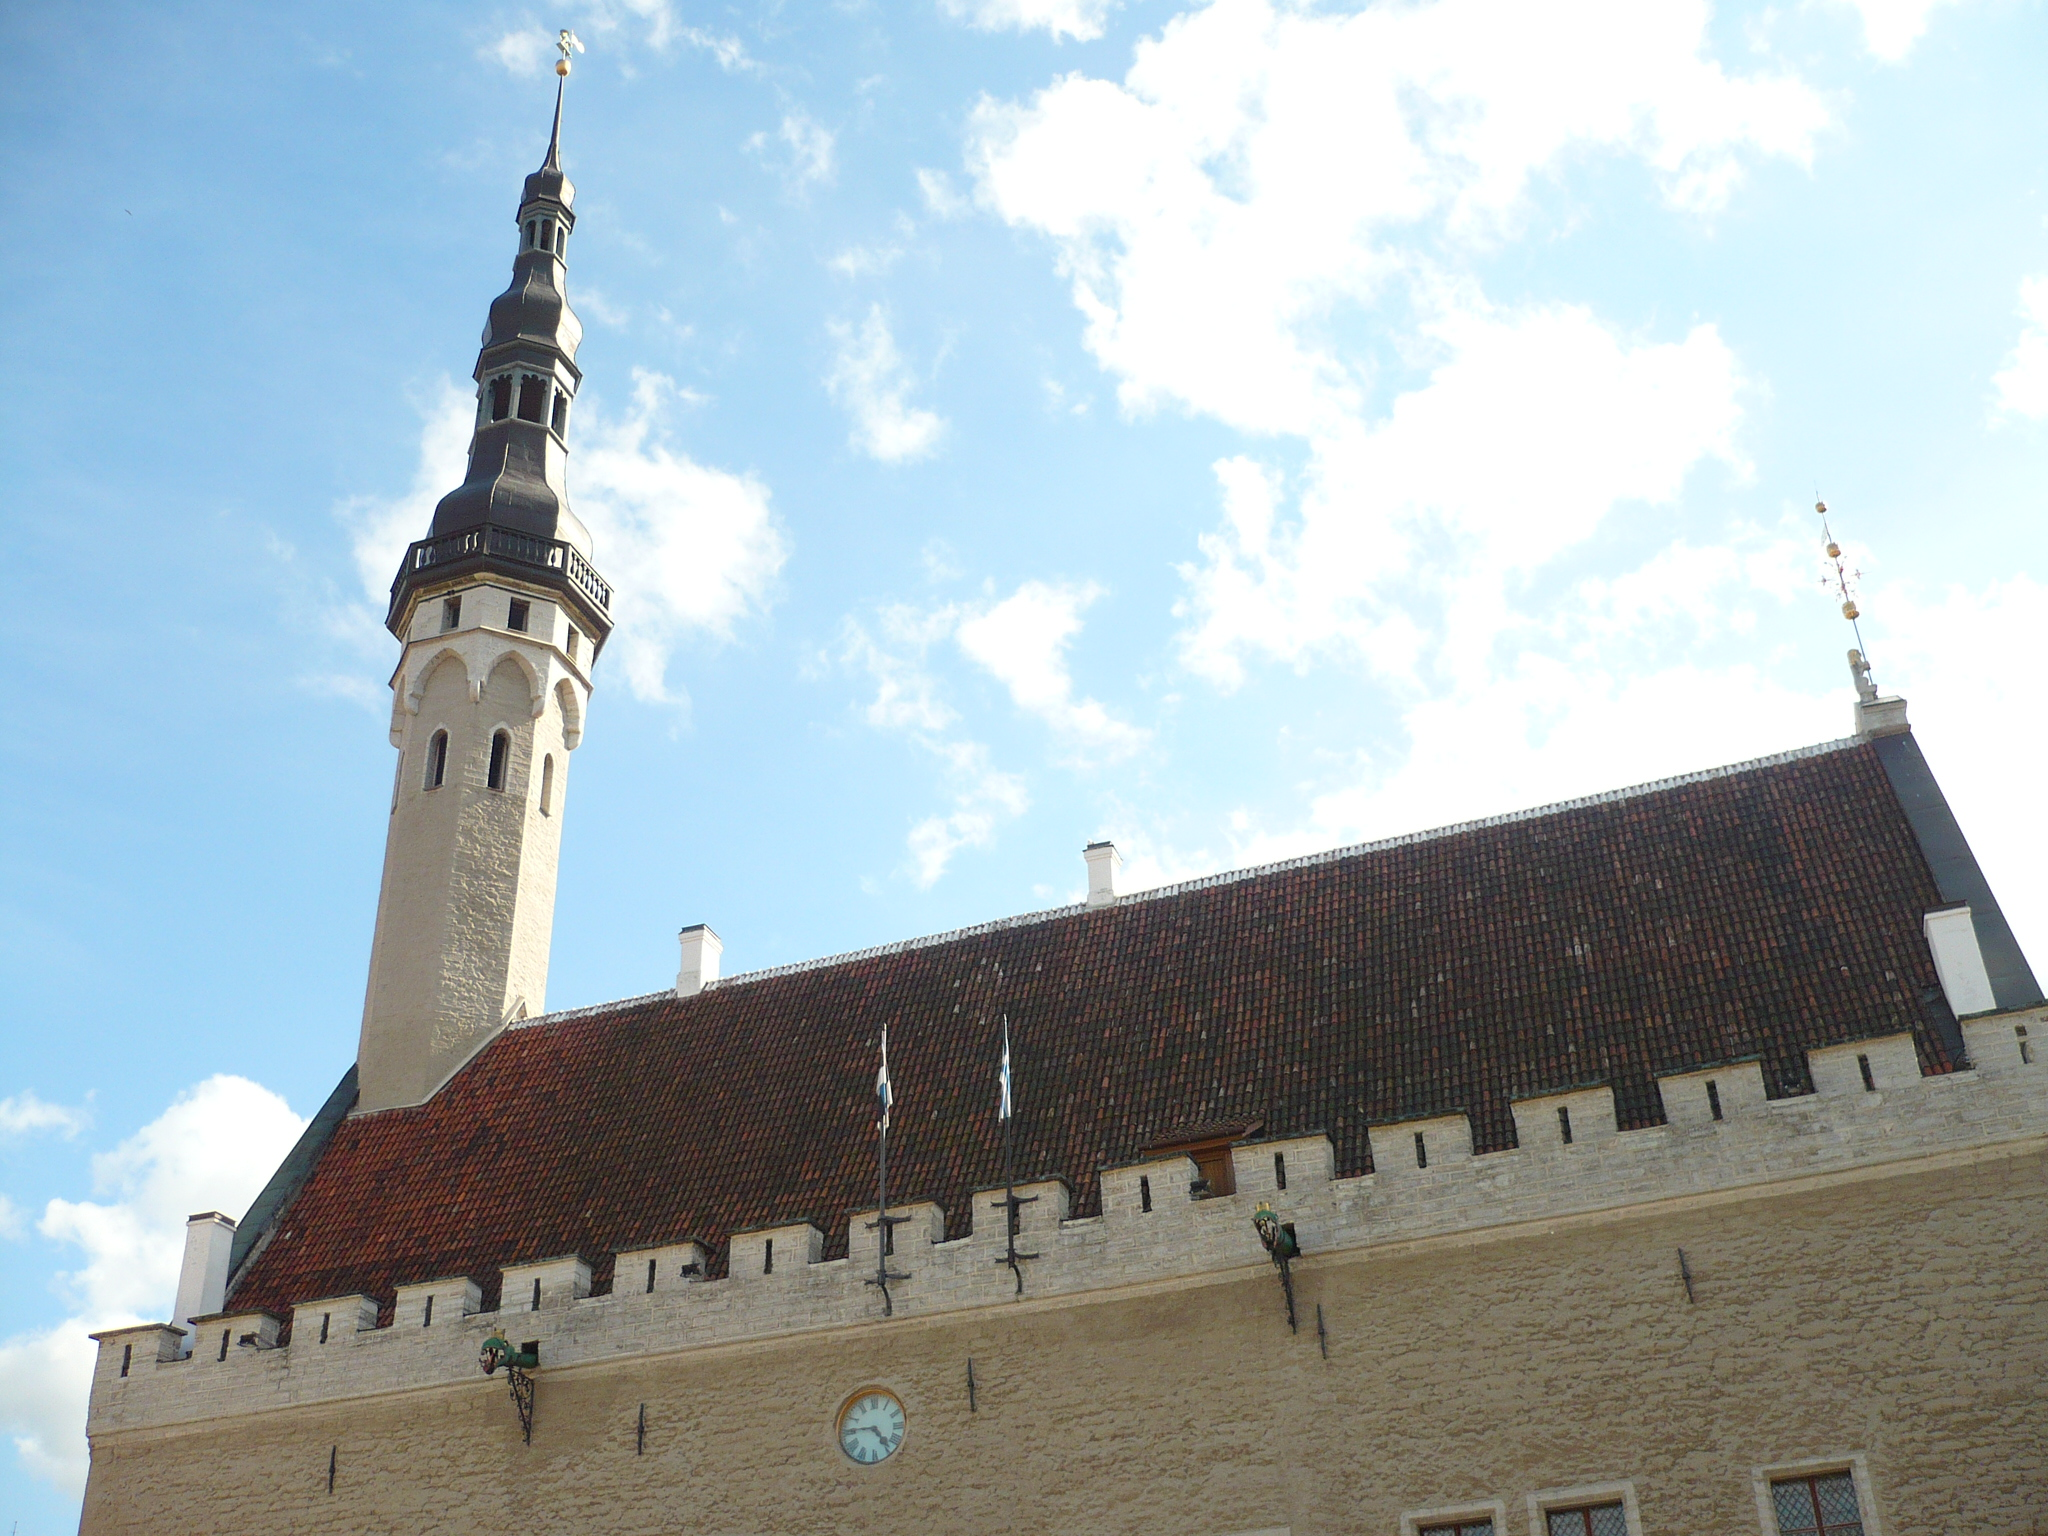 Tallinn - The City Hall